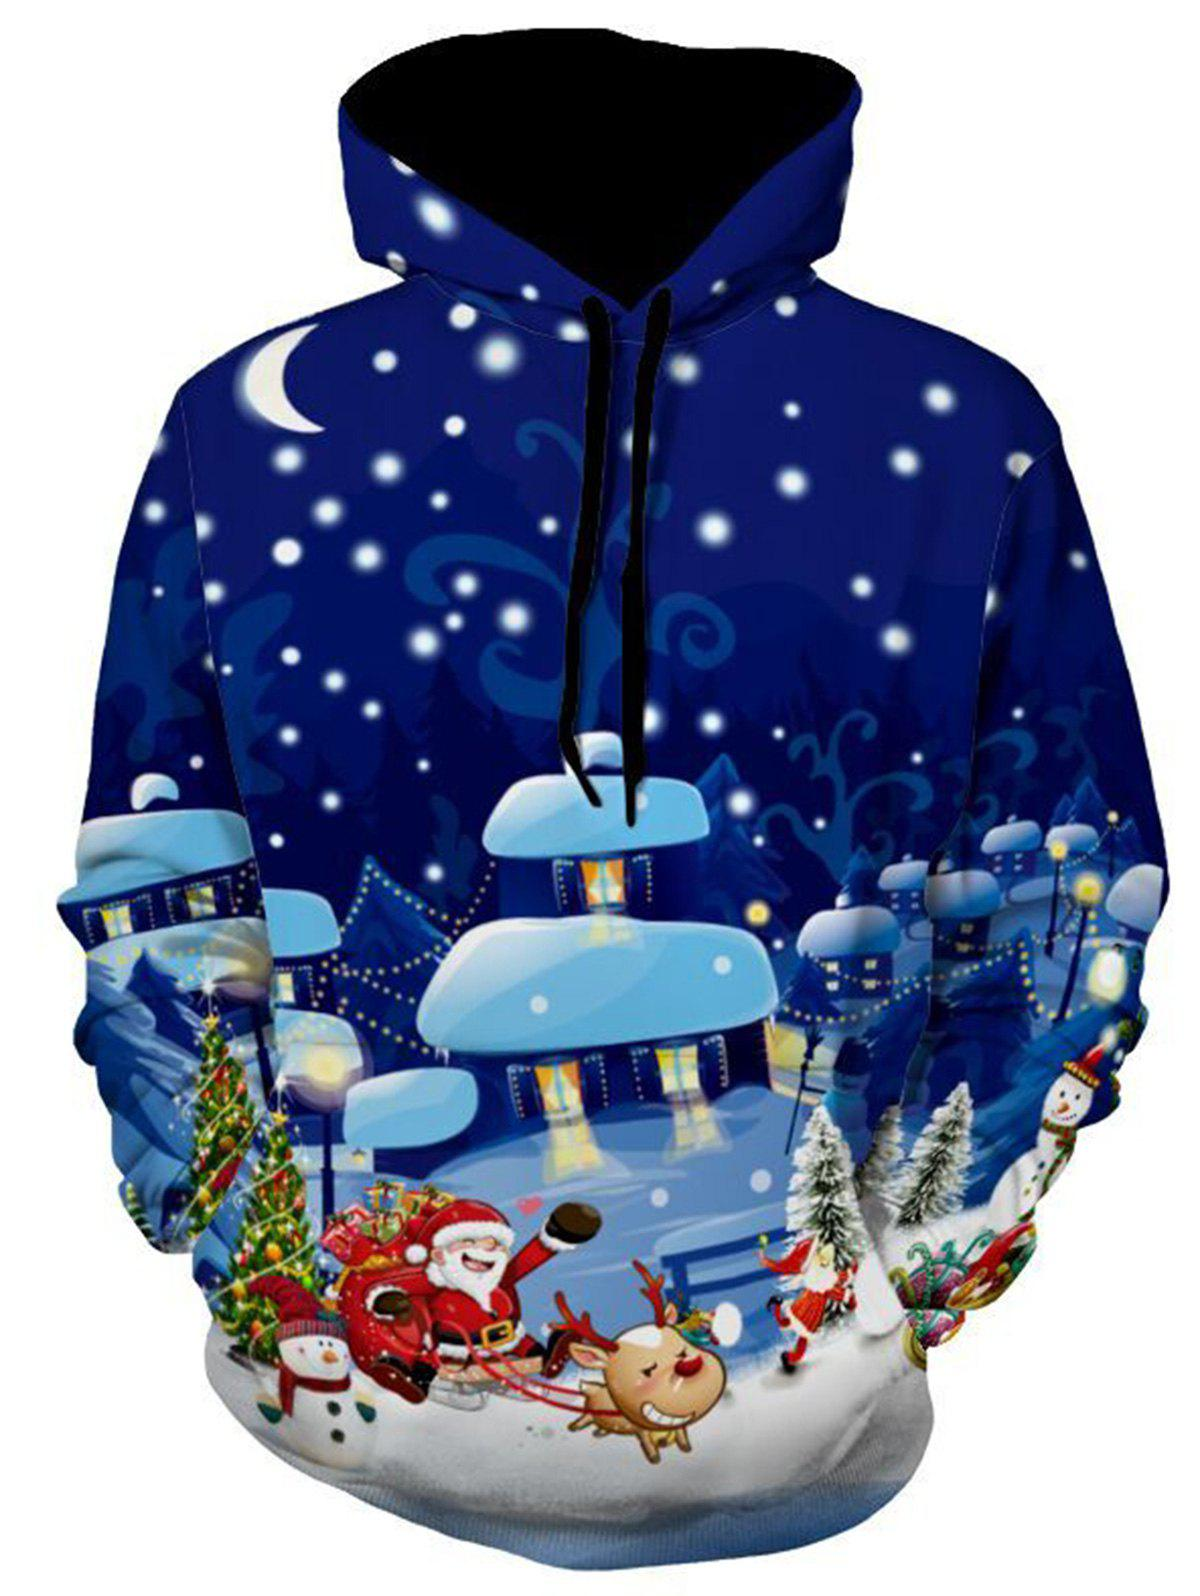 Snowflake Santa Clause Reindeer Christmas HoodieMEN<br><br>Size: 2XL; Color: COLORMIX; Material: Polyester; Clothes Type: Hoodie; Shirt Length: Regular; Sleeve Length: Full; Style: Novelty; Patterns: 3D,Print; Thickness: Regular; Occasion: Casual ,Club,Daily Use,Going Out,Sports; Weight: 0.5500kg; Package Contents: 1 x Hoodie;